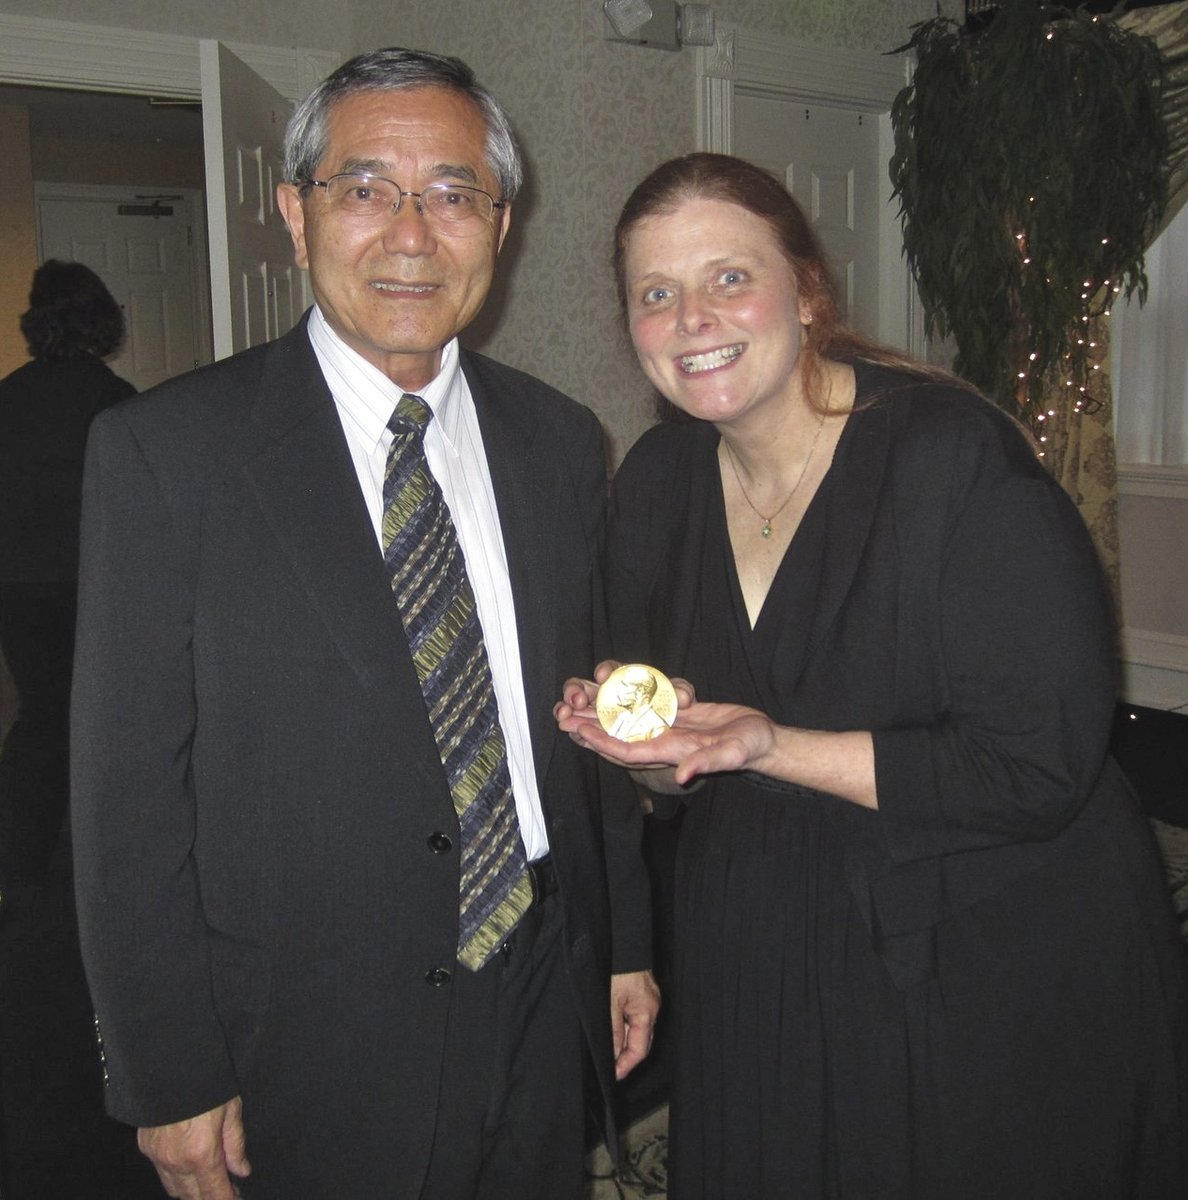 """test Twitter Media - Dr. Ei-ichi Negishi was a professor @SyracuseU when I was at SU. When he won @NobelPrize in 2010, I wrote to congratulate him """"When you are in Syracuse, let's have dinner."""" It happened.  I gave him a #IYC2011 pin so he let me hold his Nobel Prize Medallion.#PurdueUniversity https://t.co/rO6Va1voFl"""